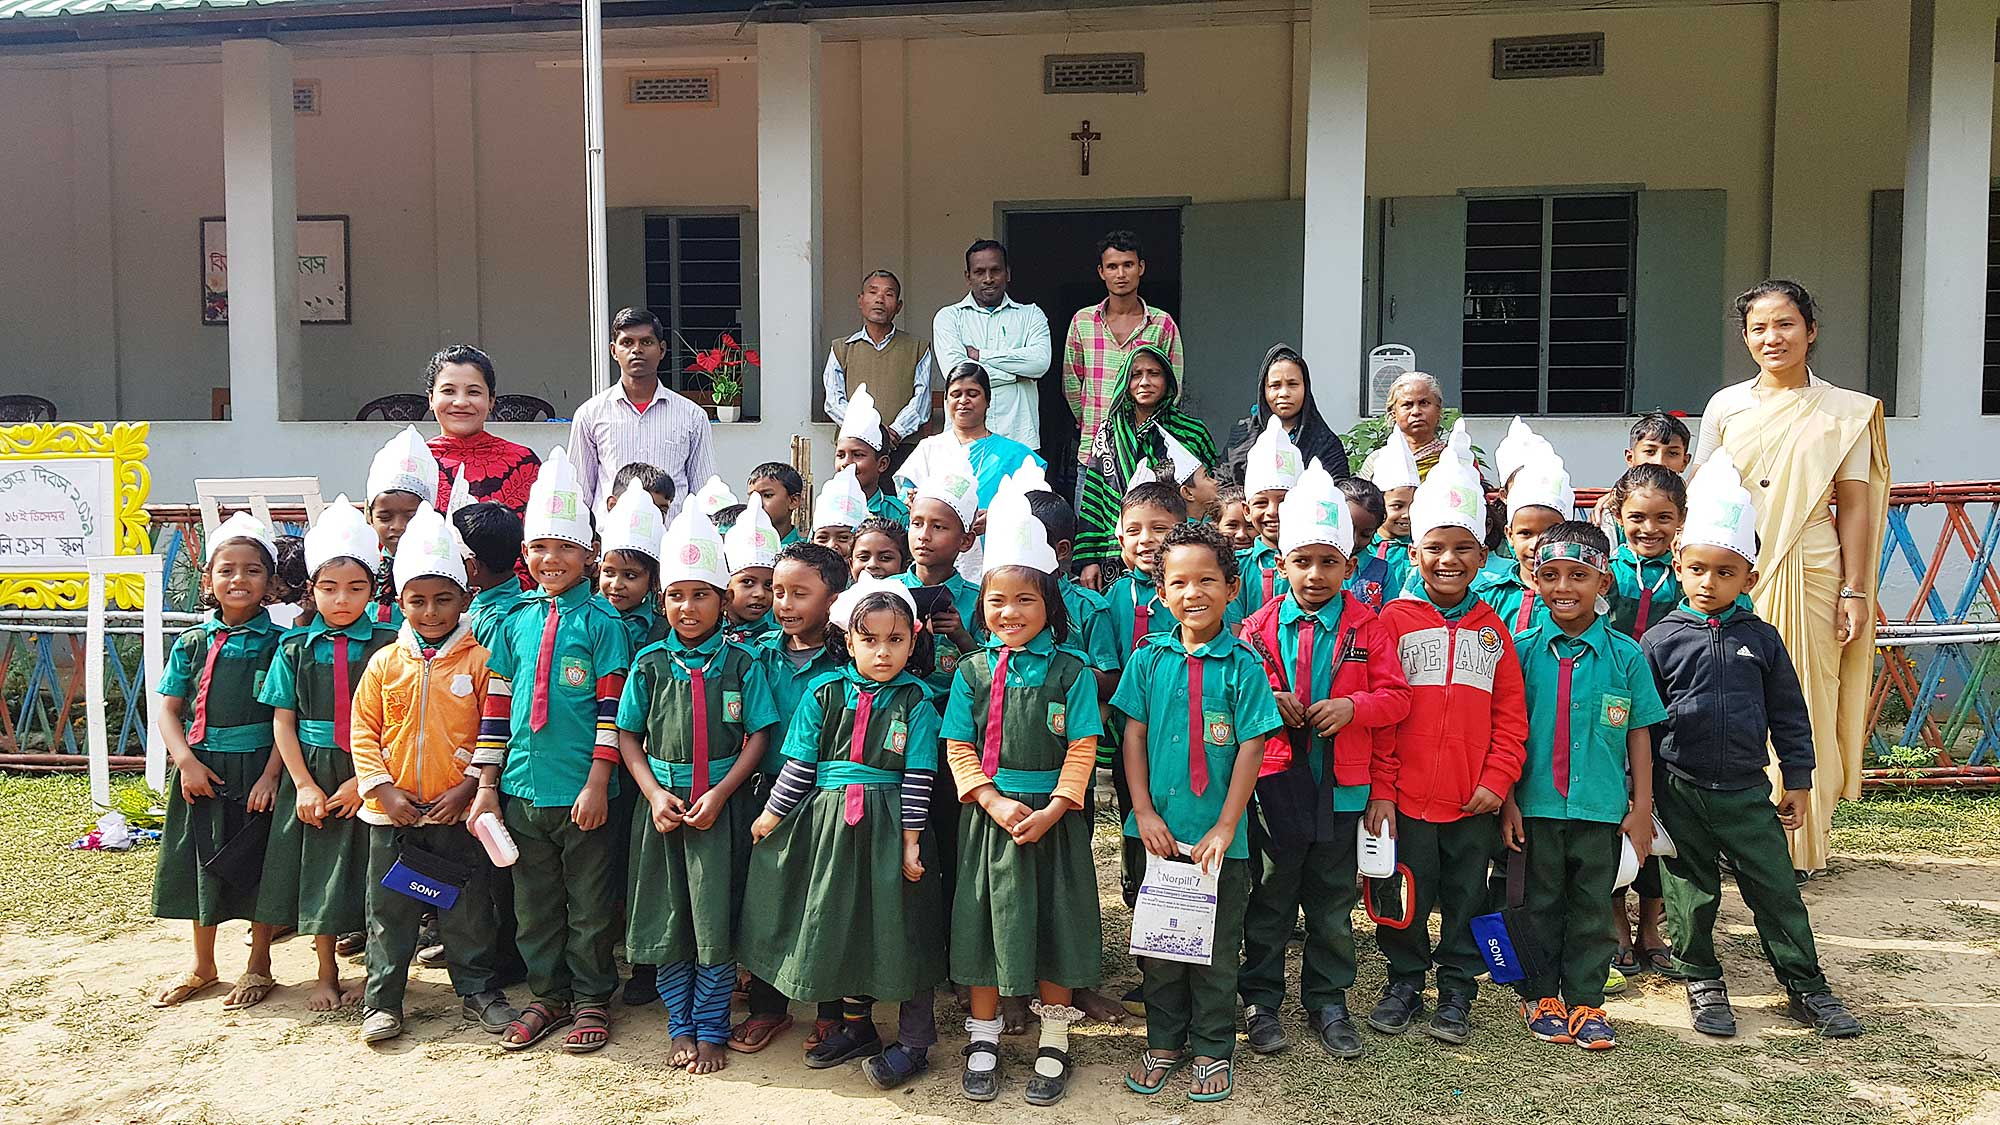 Holy Cross School, Kularua, Bangladesh, students and teachers